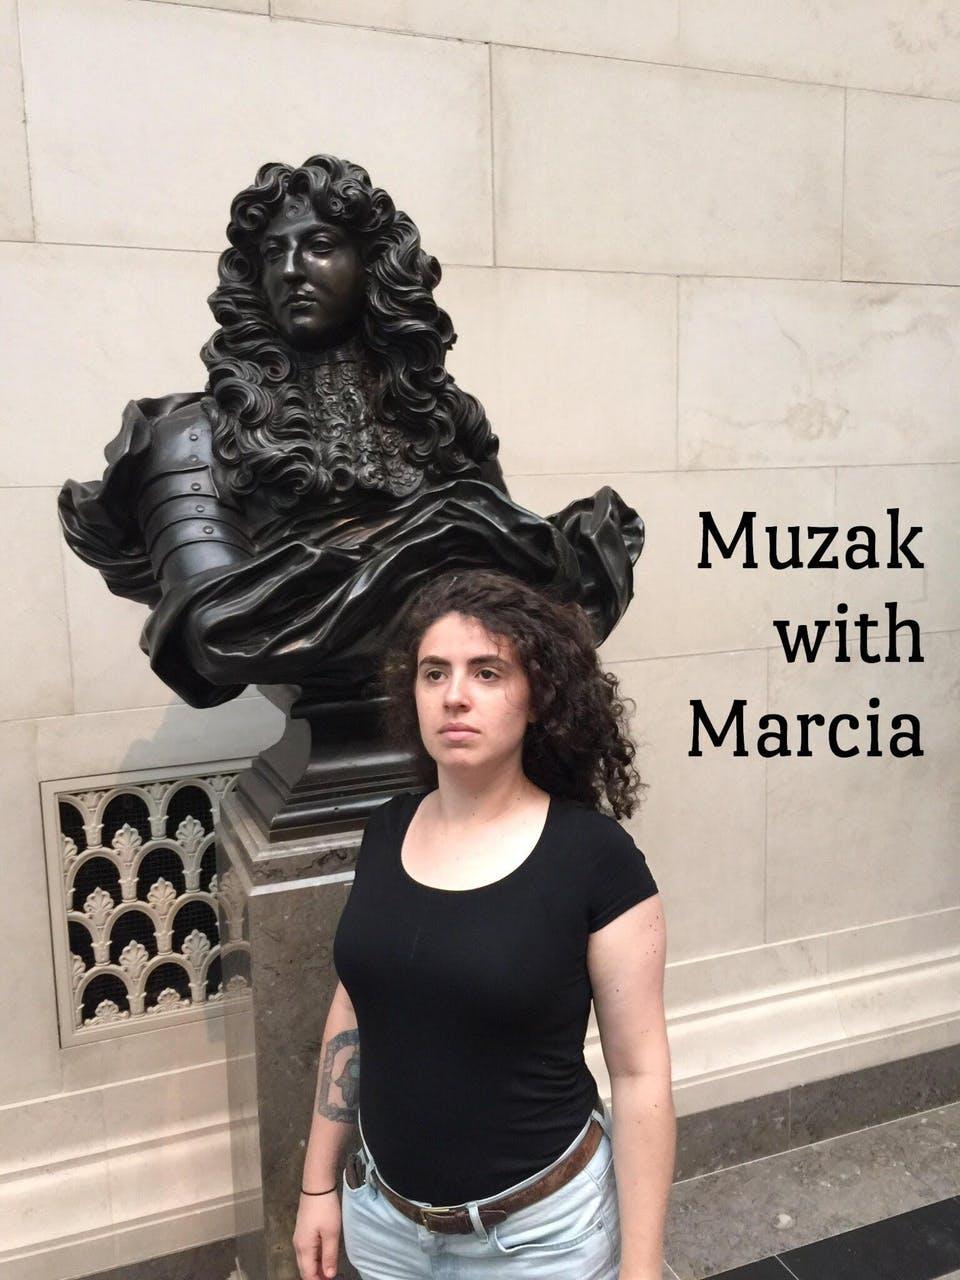 Muzak with Marcia (Free)